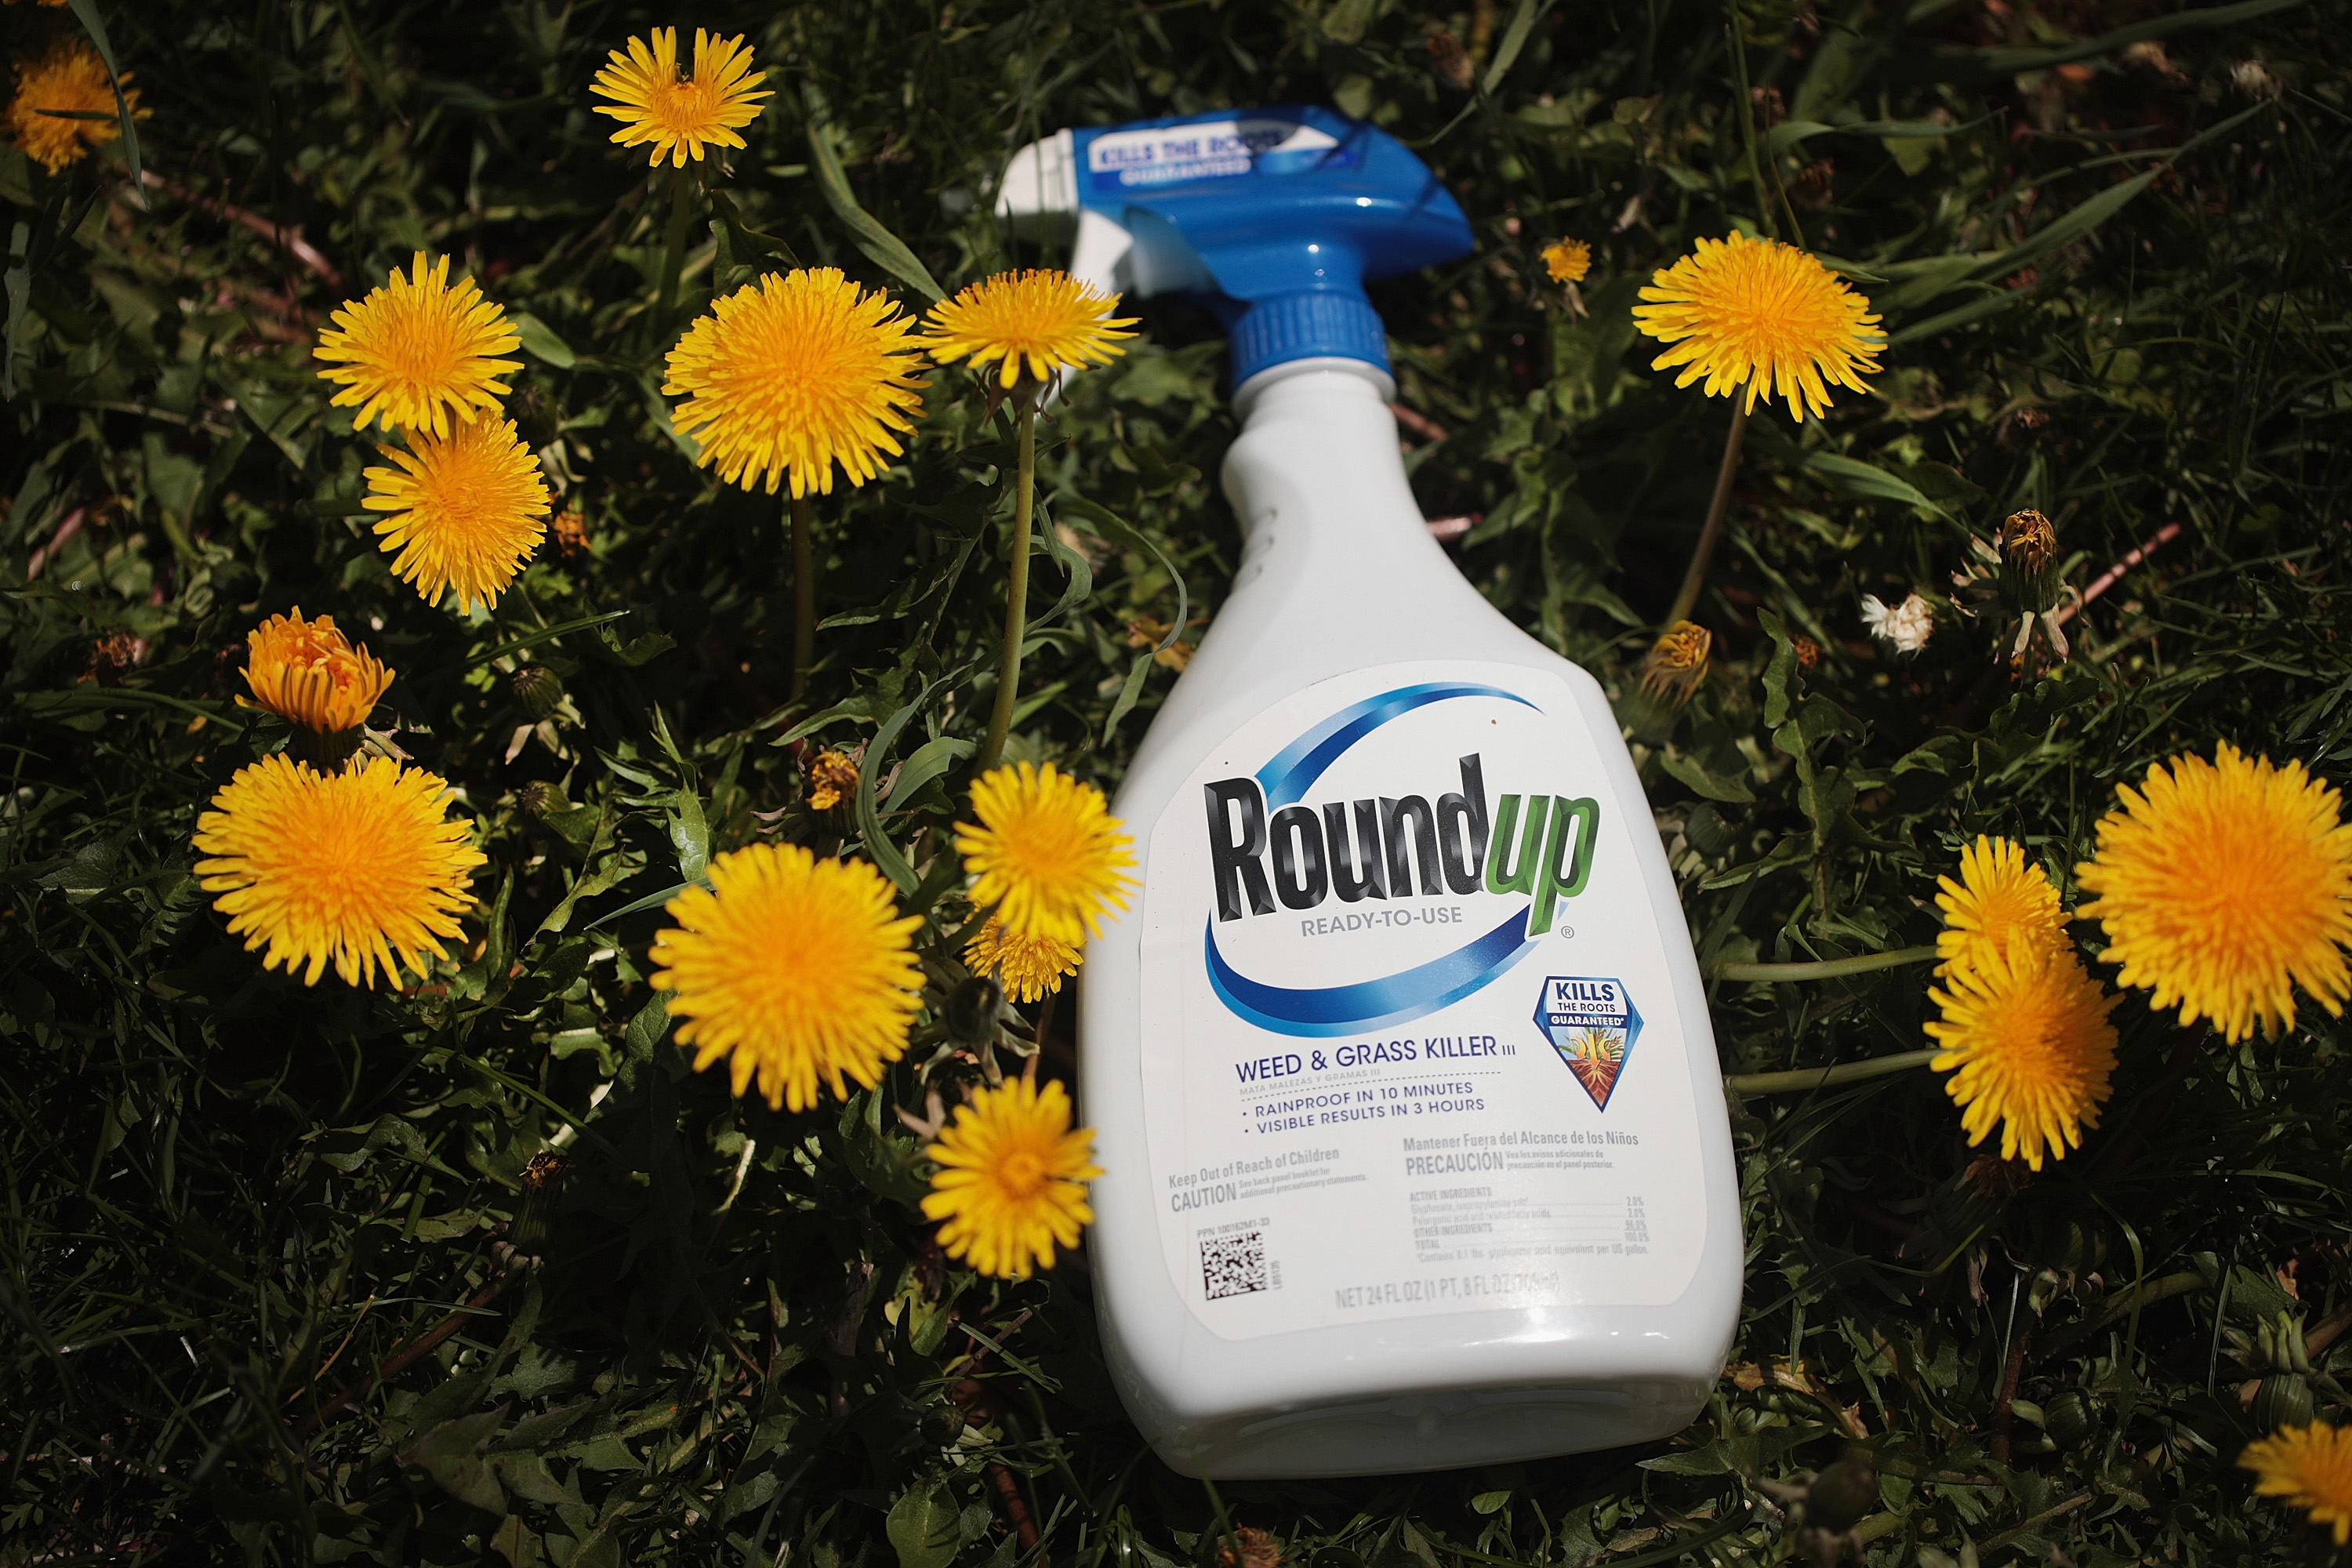 Roundup weed killer is shown on May 14, 2019 in Chicago, Illinois.